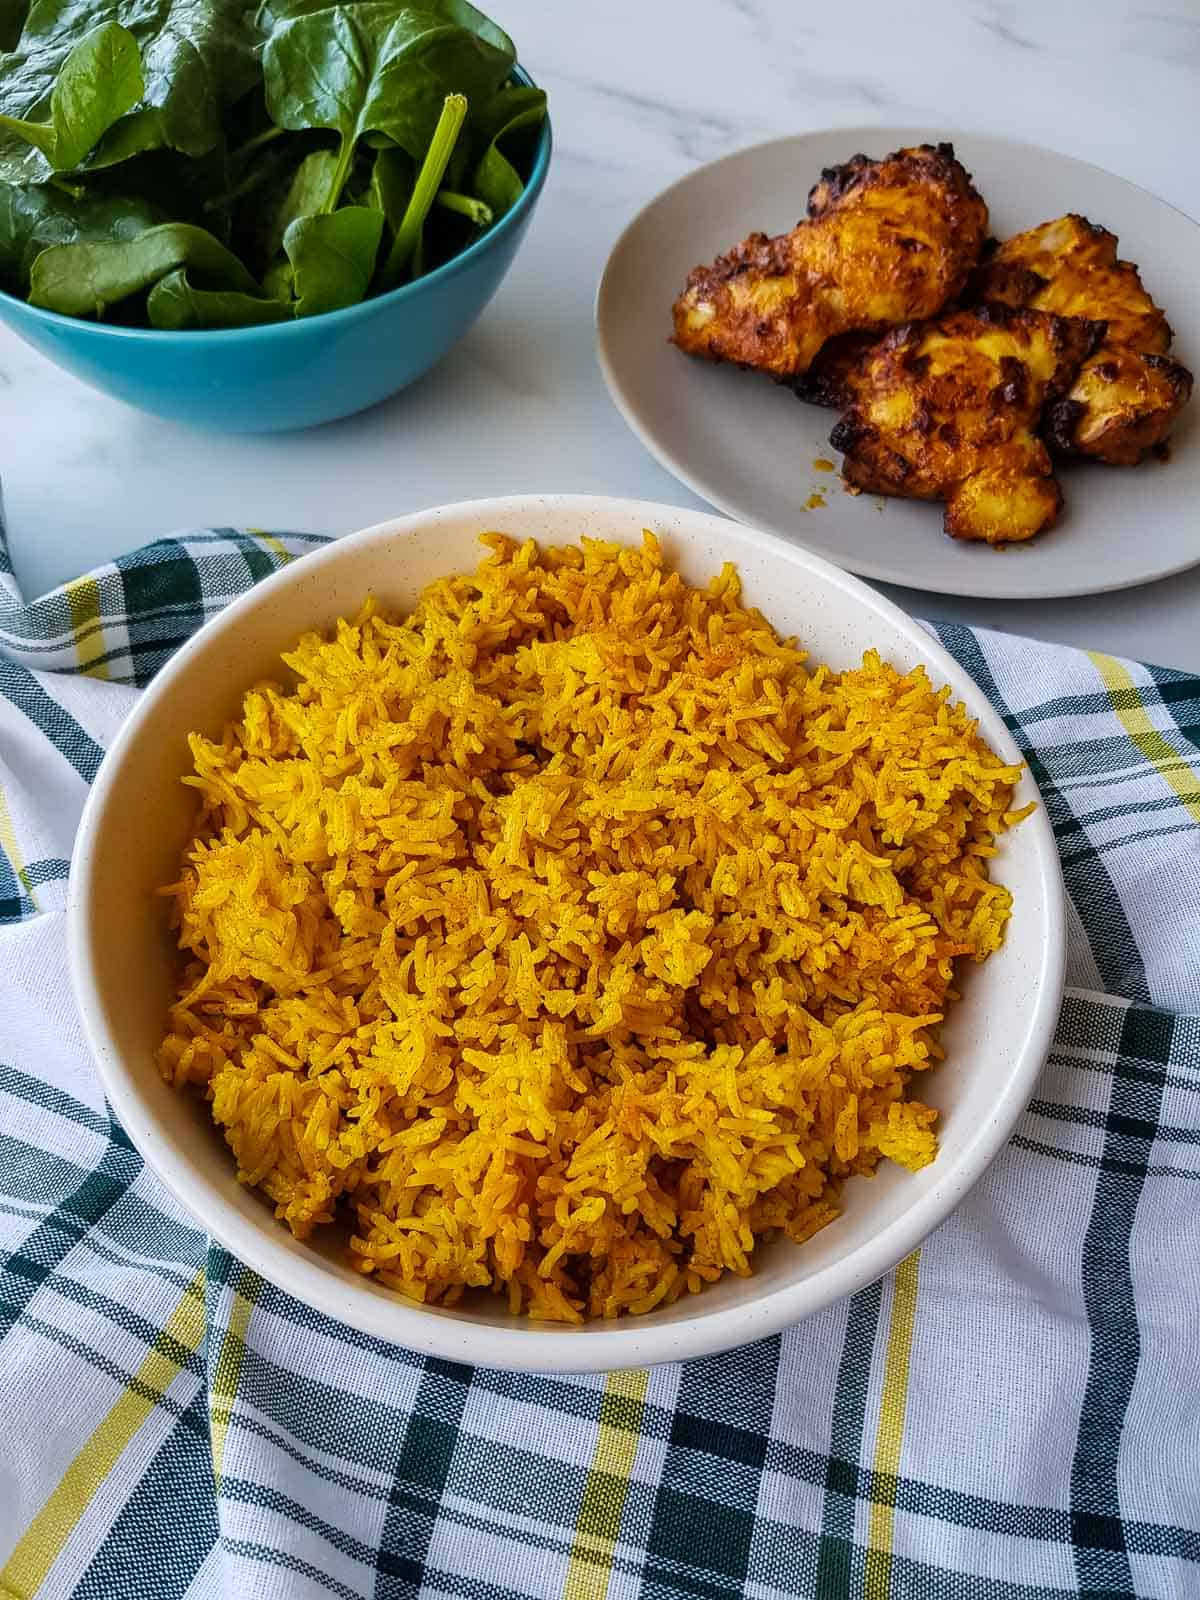 Turmeric rice on a table with chicken and salad.